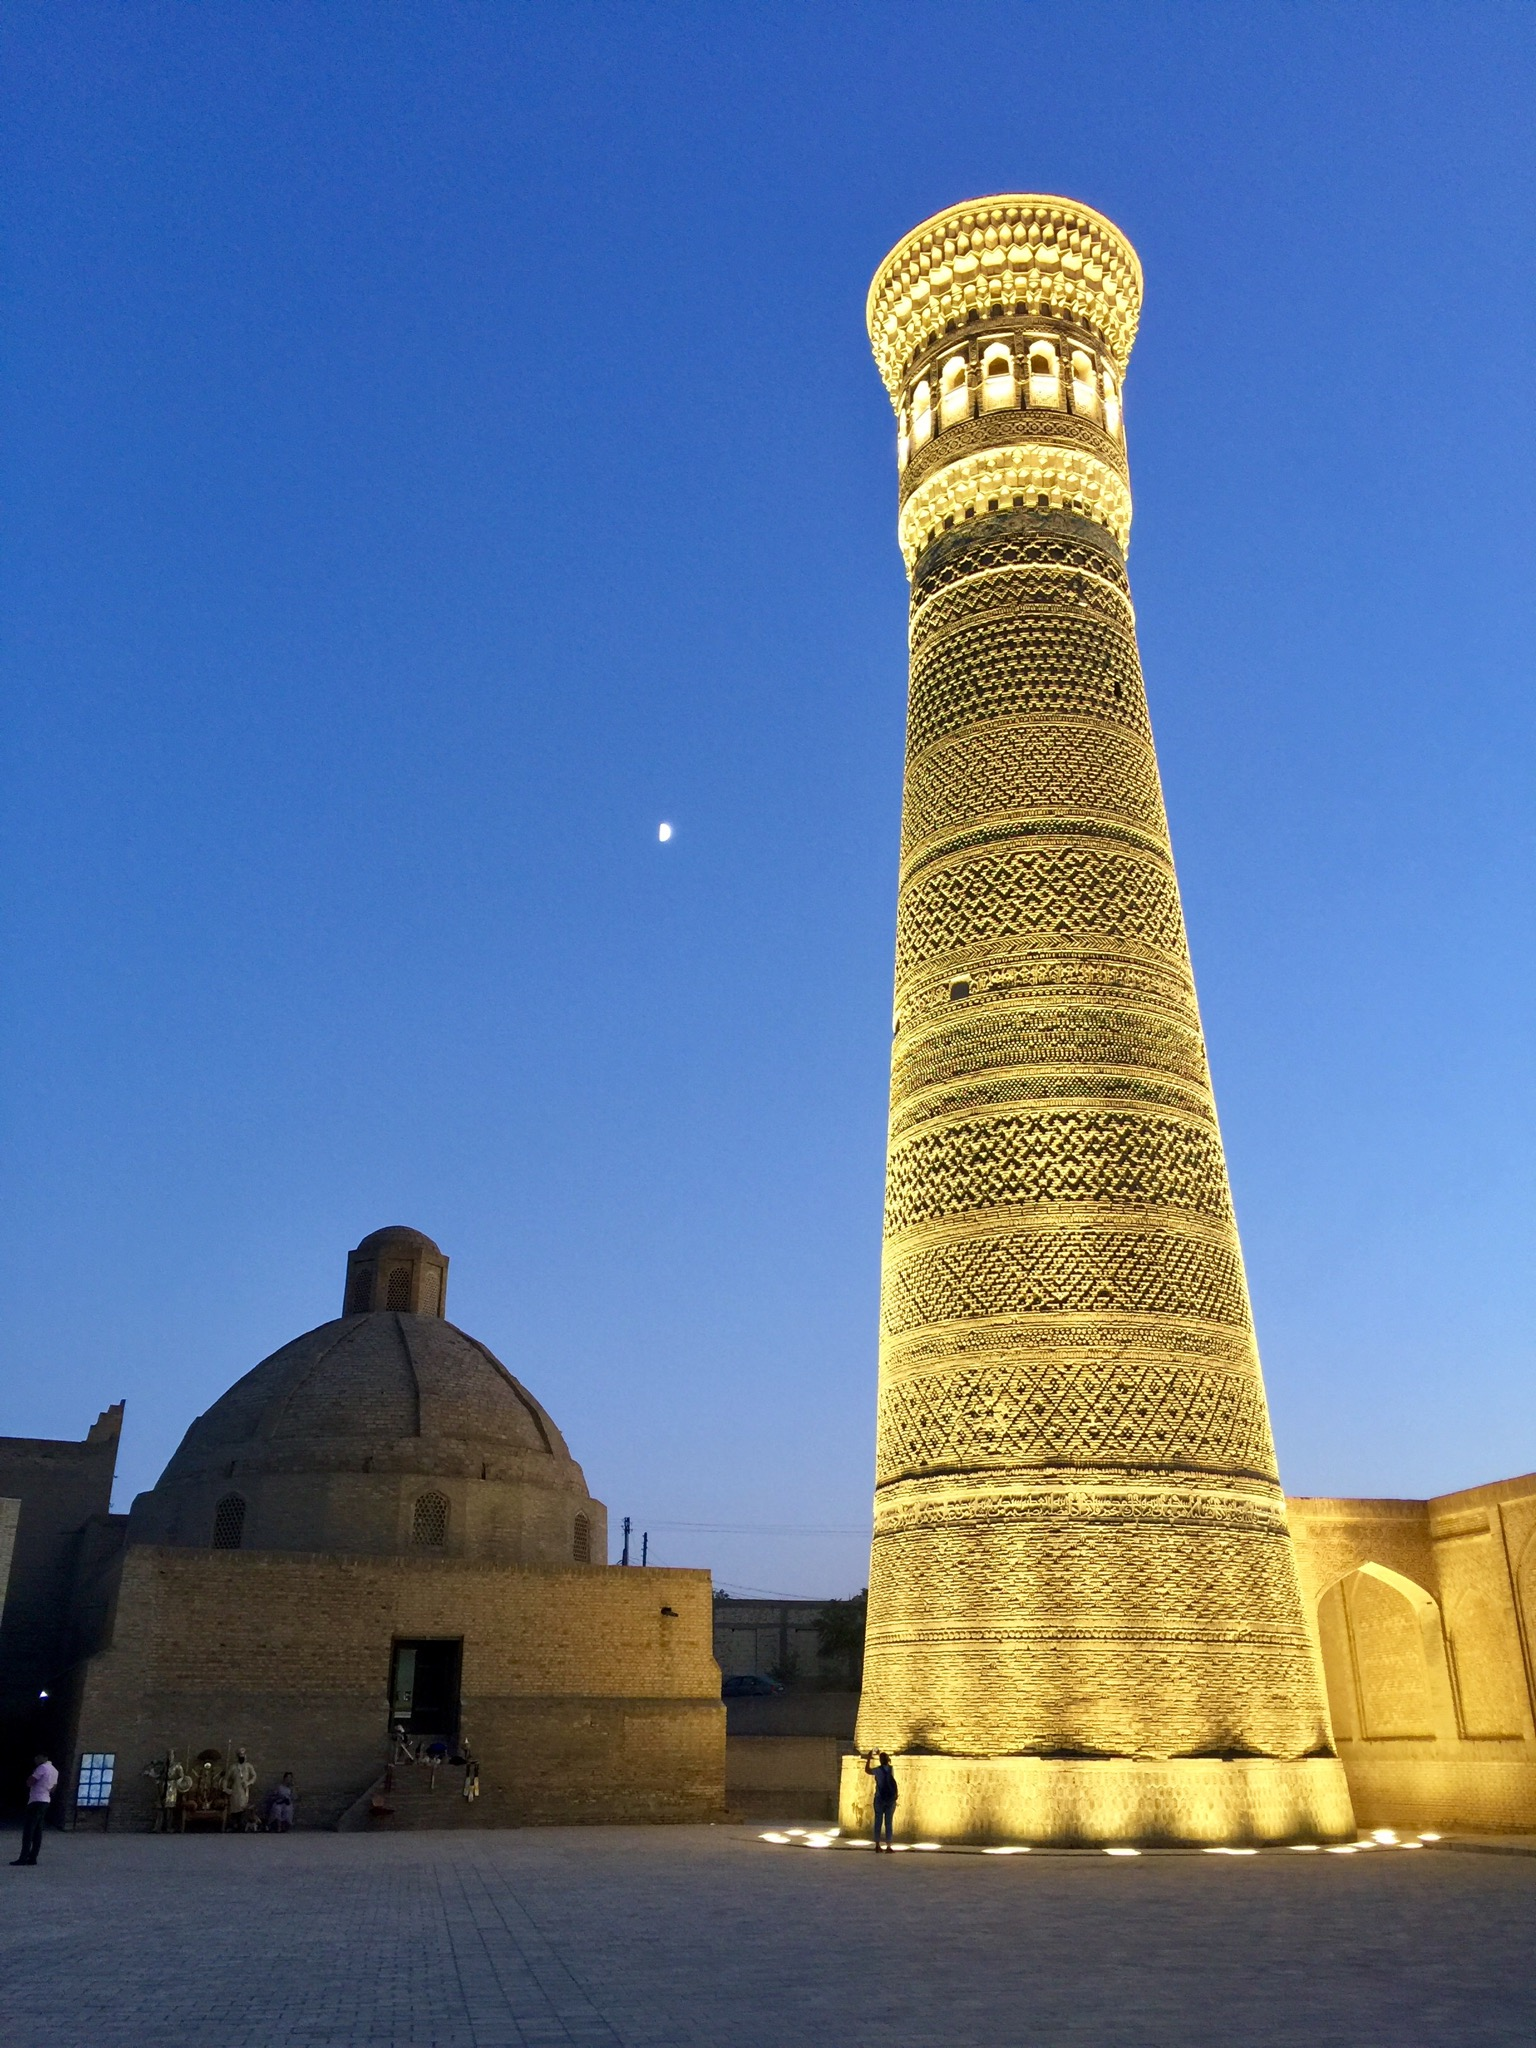 Kalon minaret at night